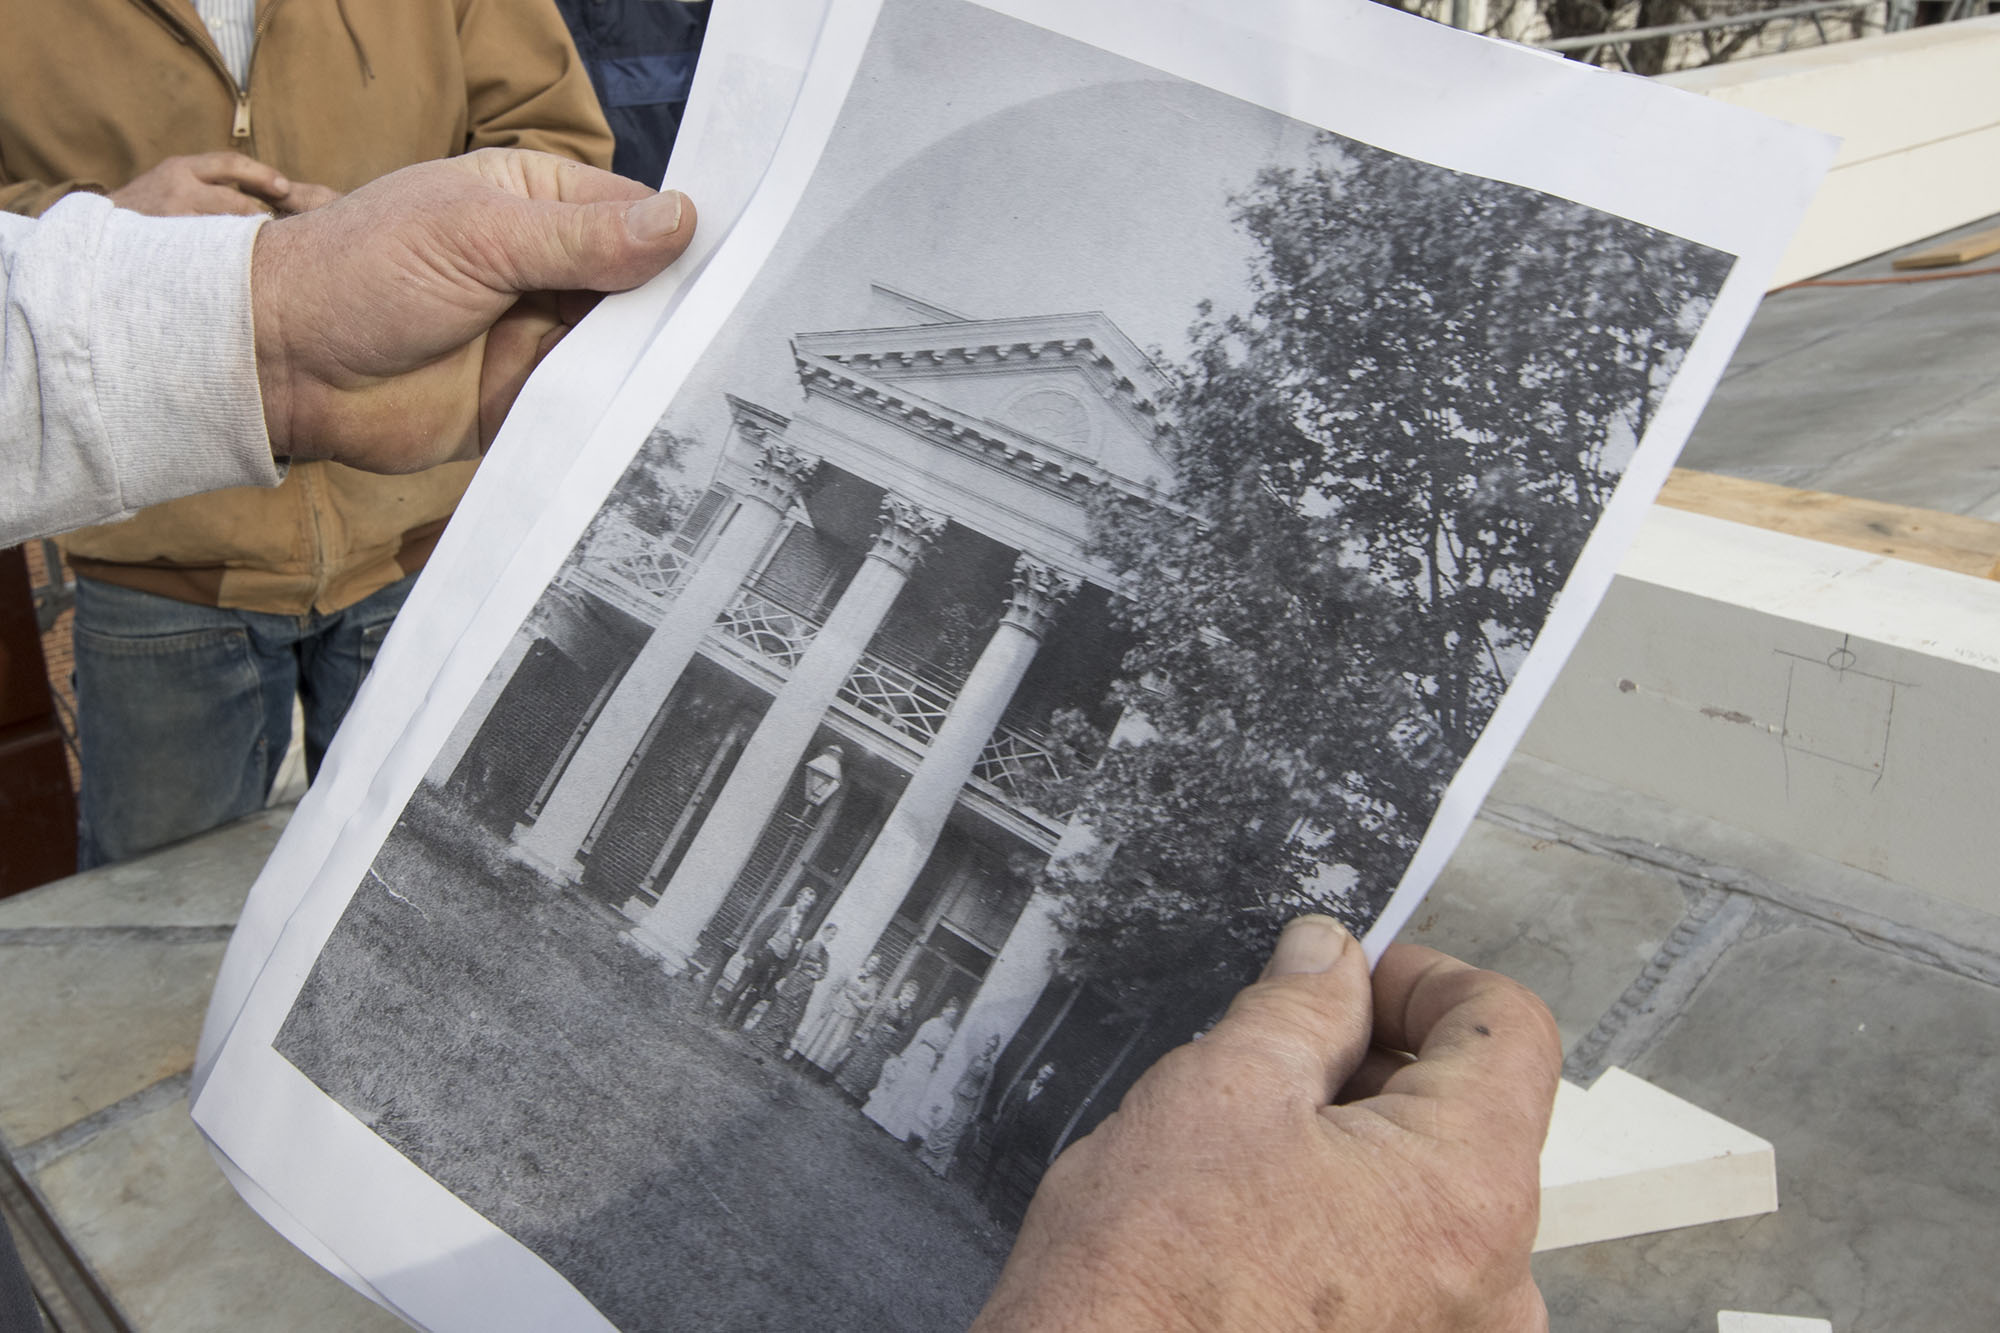 Architectural drawings, accounting memos and historic photographs bolster physical evidence found under the pavilion's roof and in its attic that a balustrade was once installed on the roof.